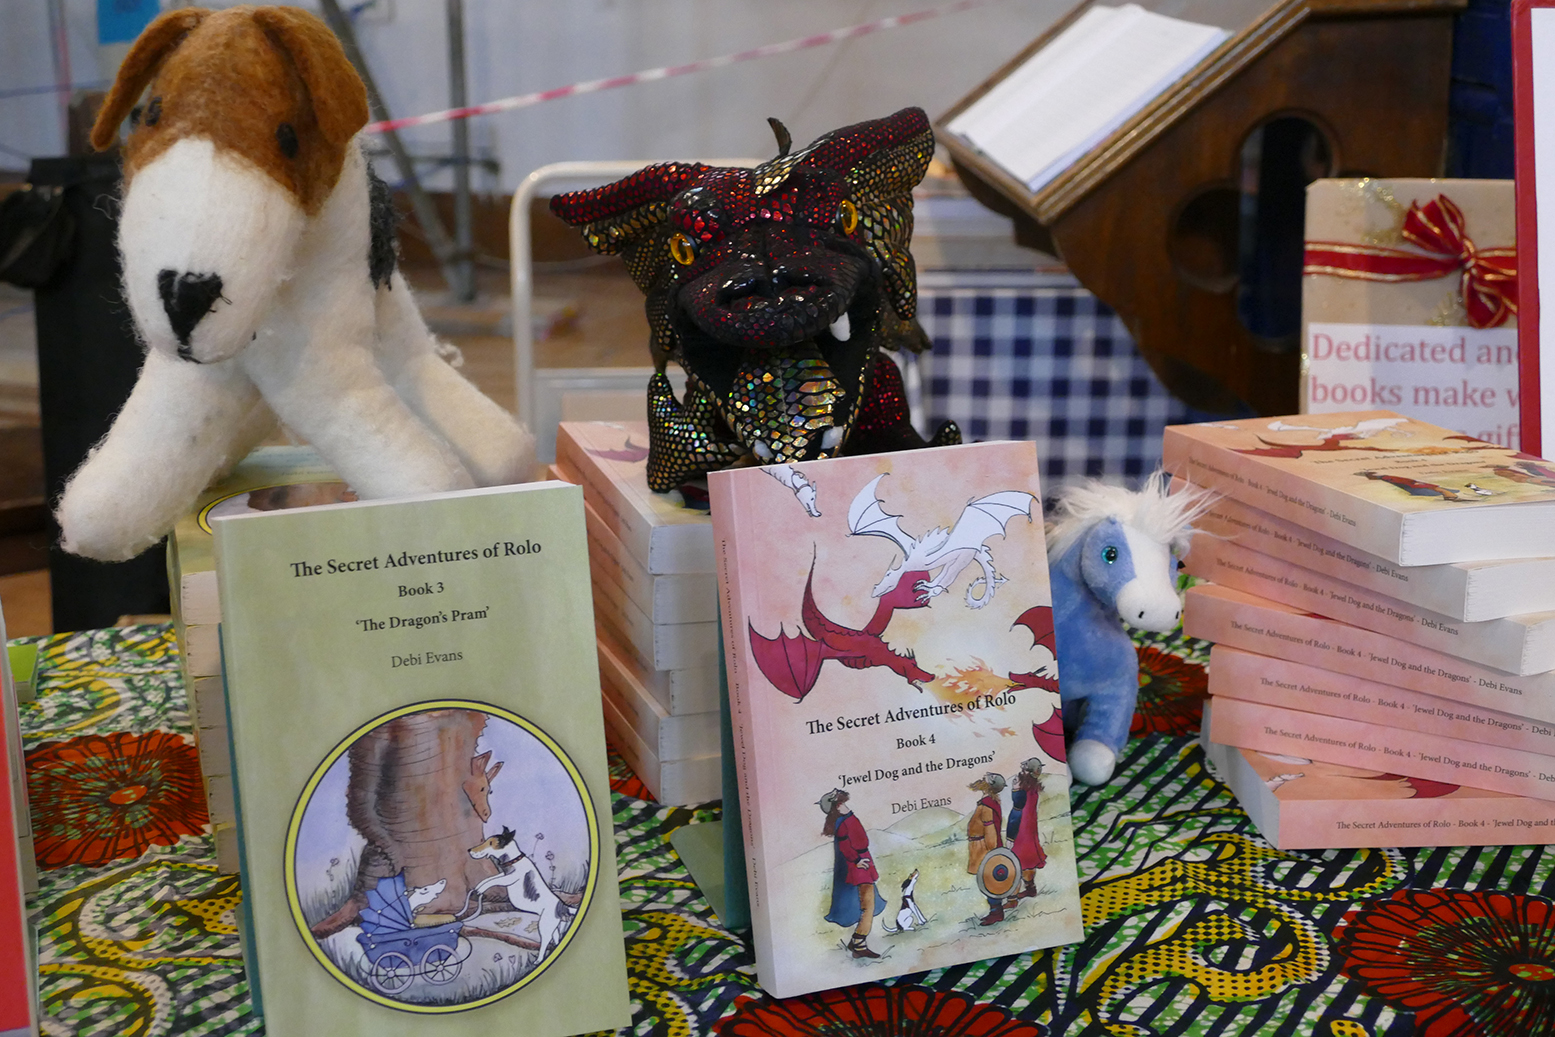 'Jewel Dog and the Dragons' alongside book 3 in the series, 'The Dragon's Pram'